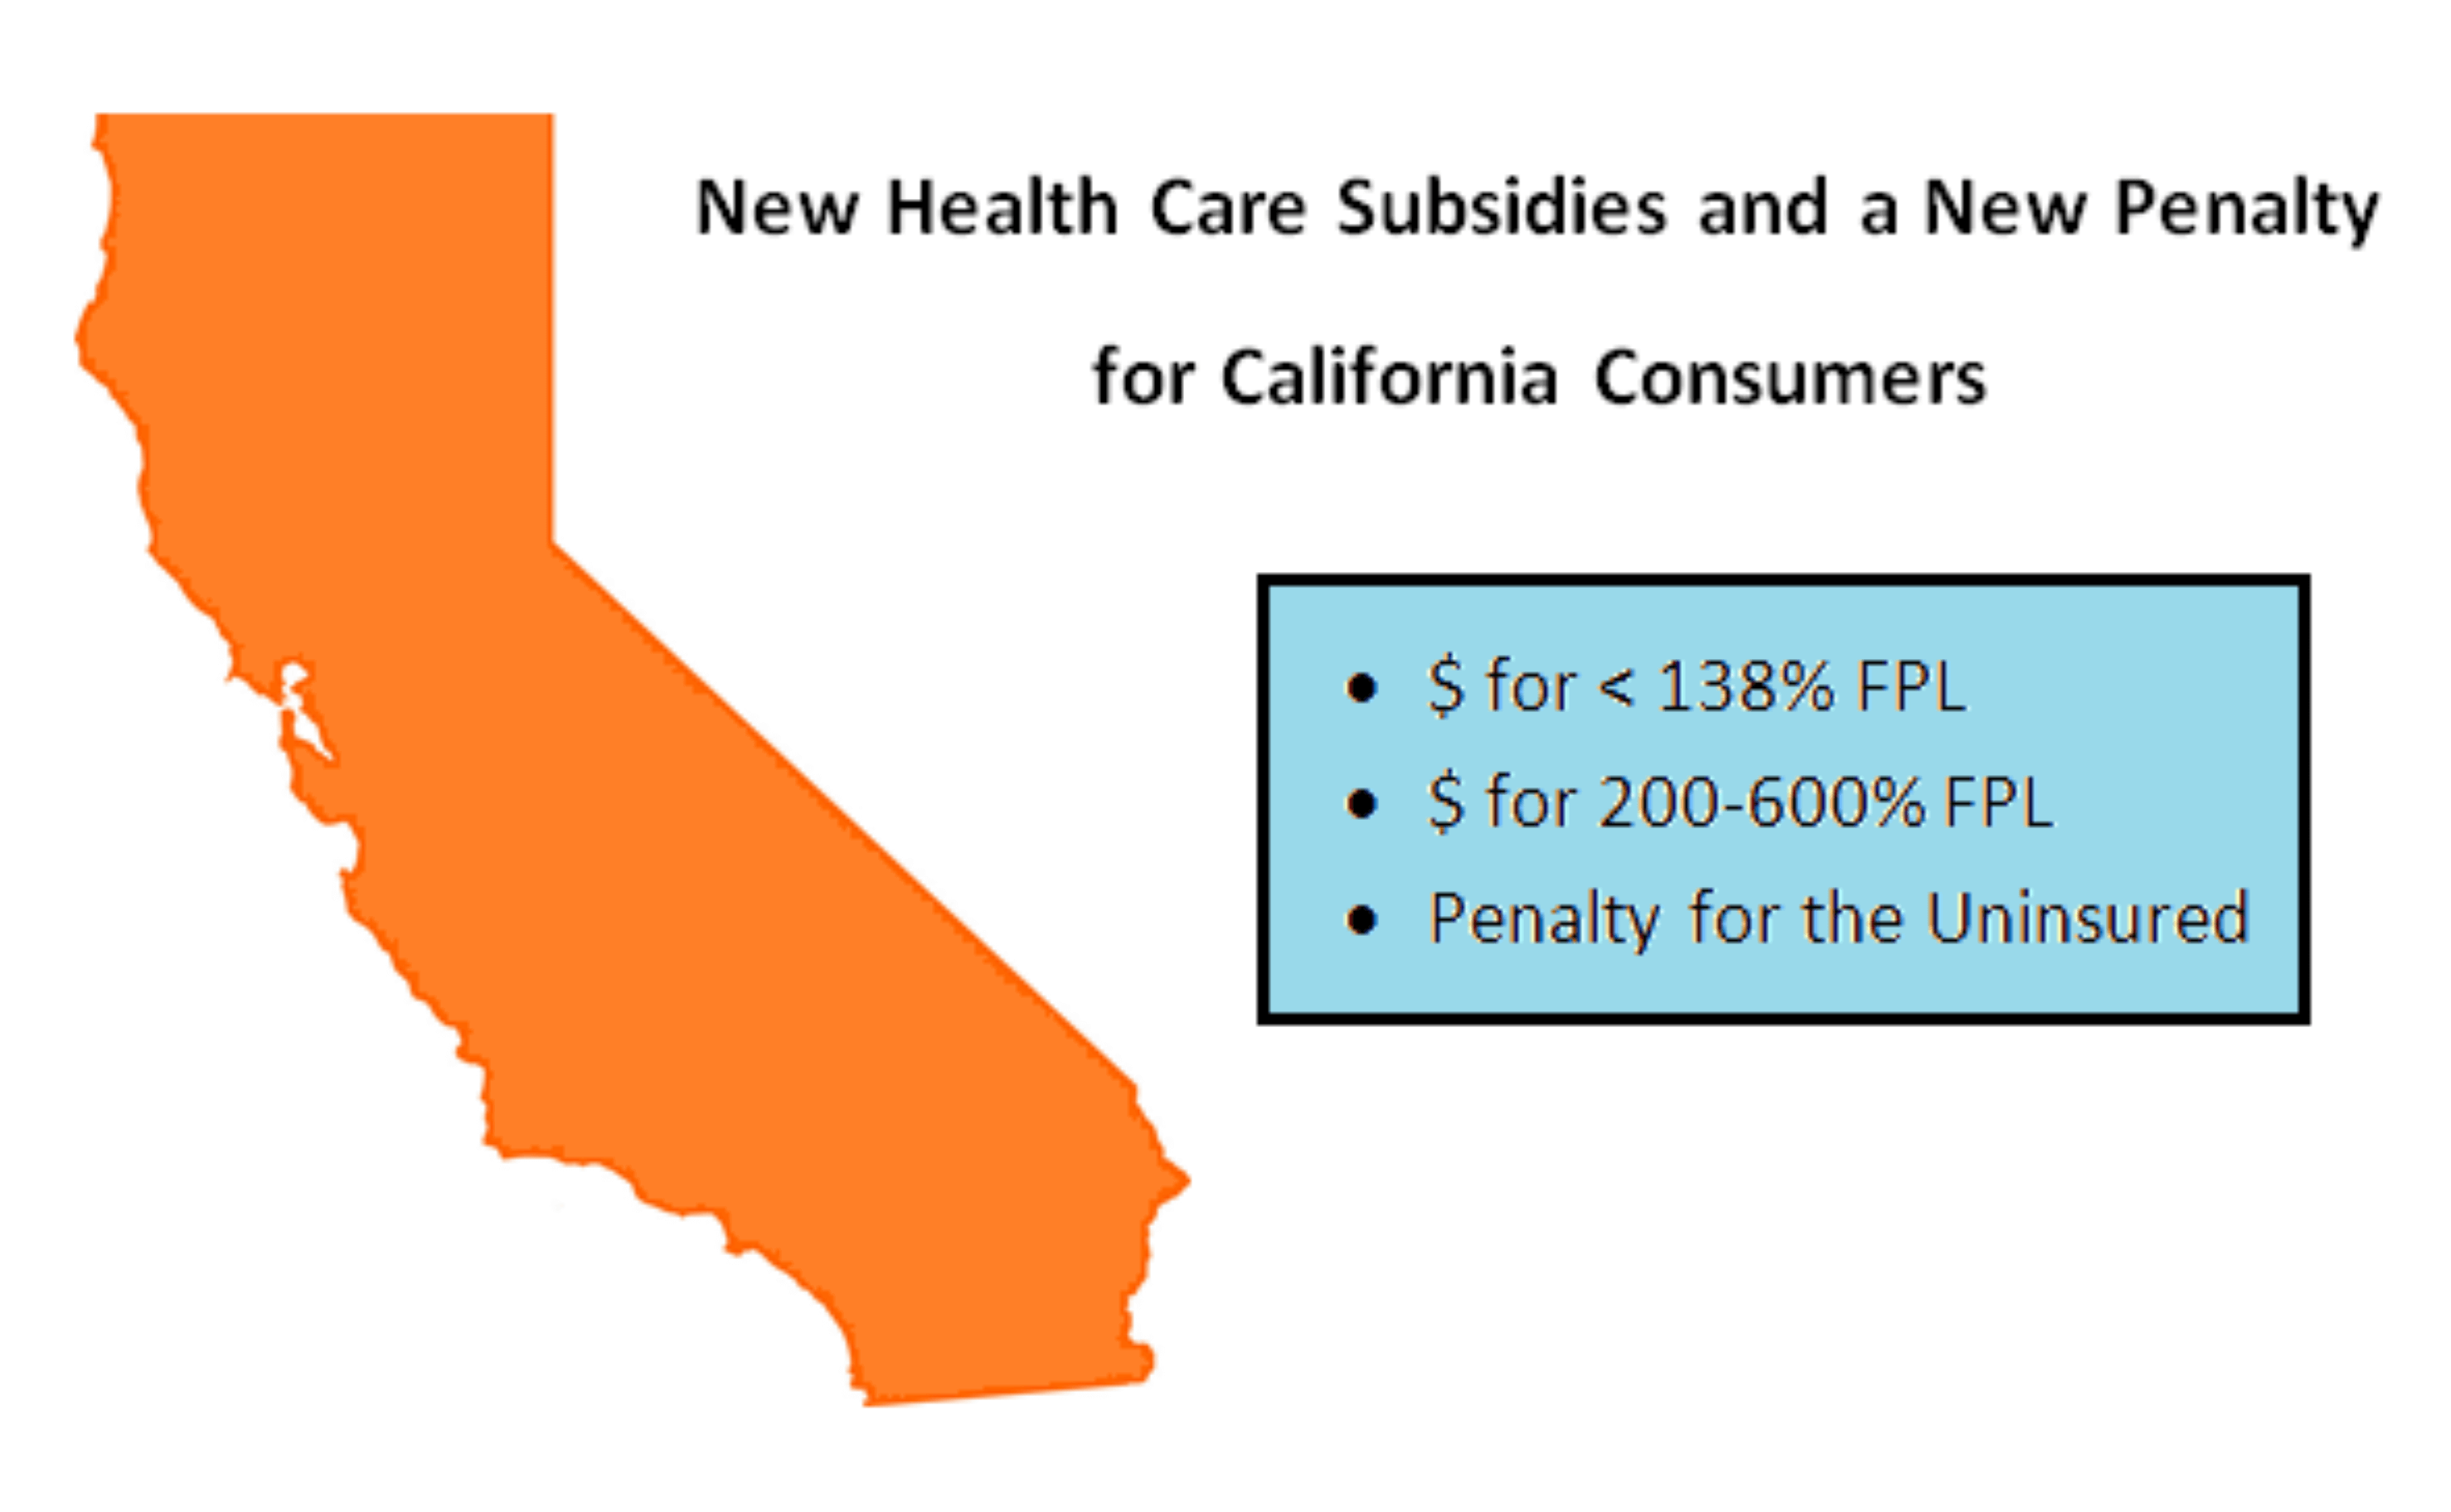 new covered california health care subsidies and penalties